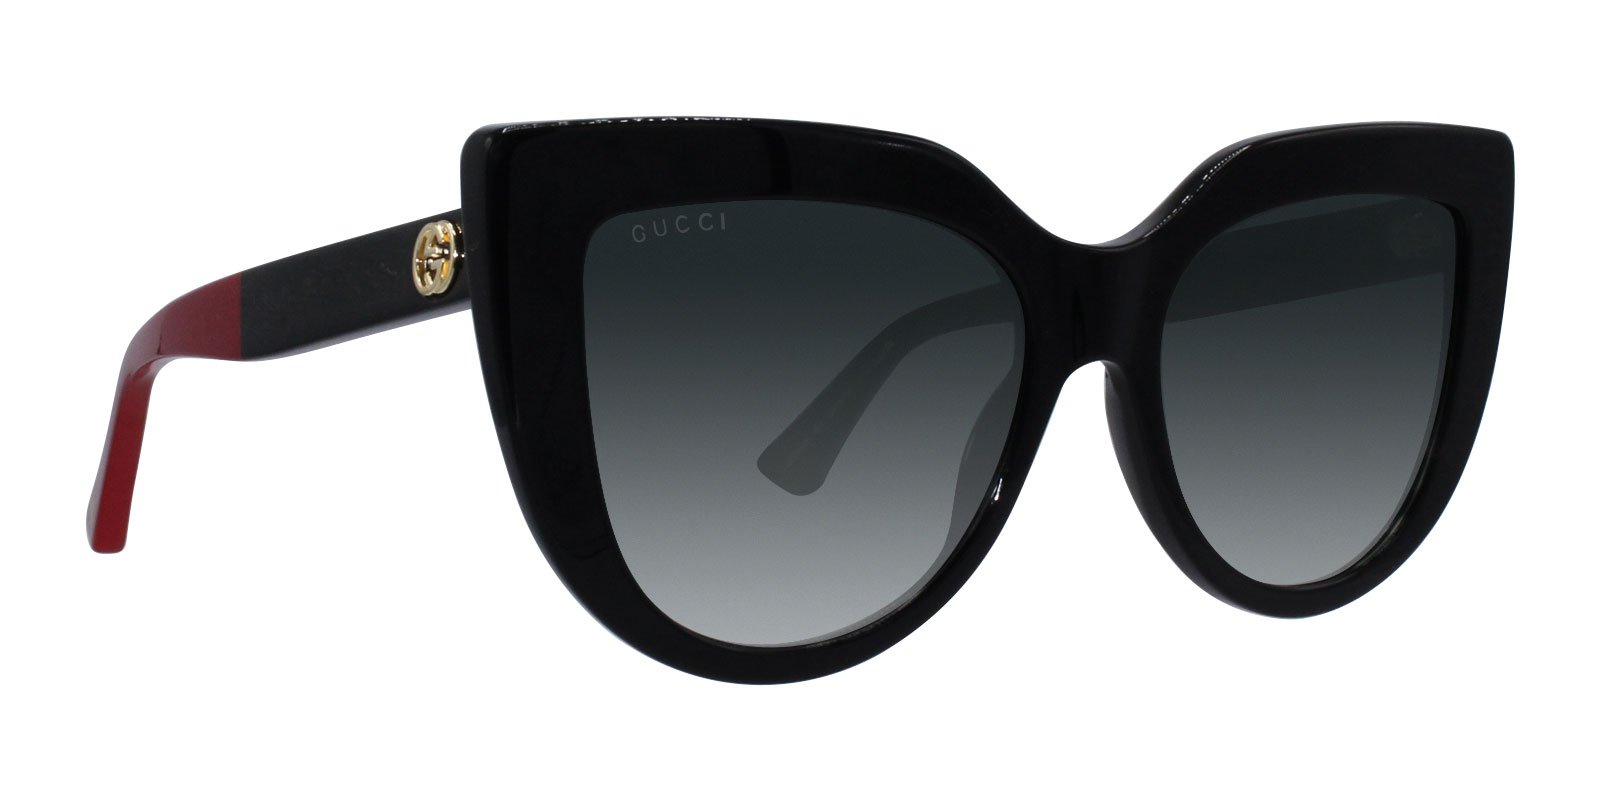 Gucci - GG0164S Black Cat-Eye Women Sunglasses - 53mm-Sunglasses-Designer Eyes